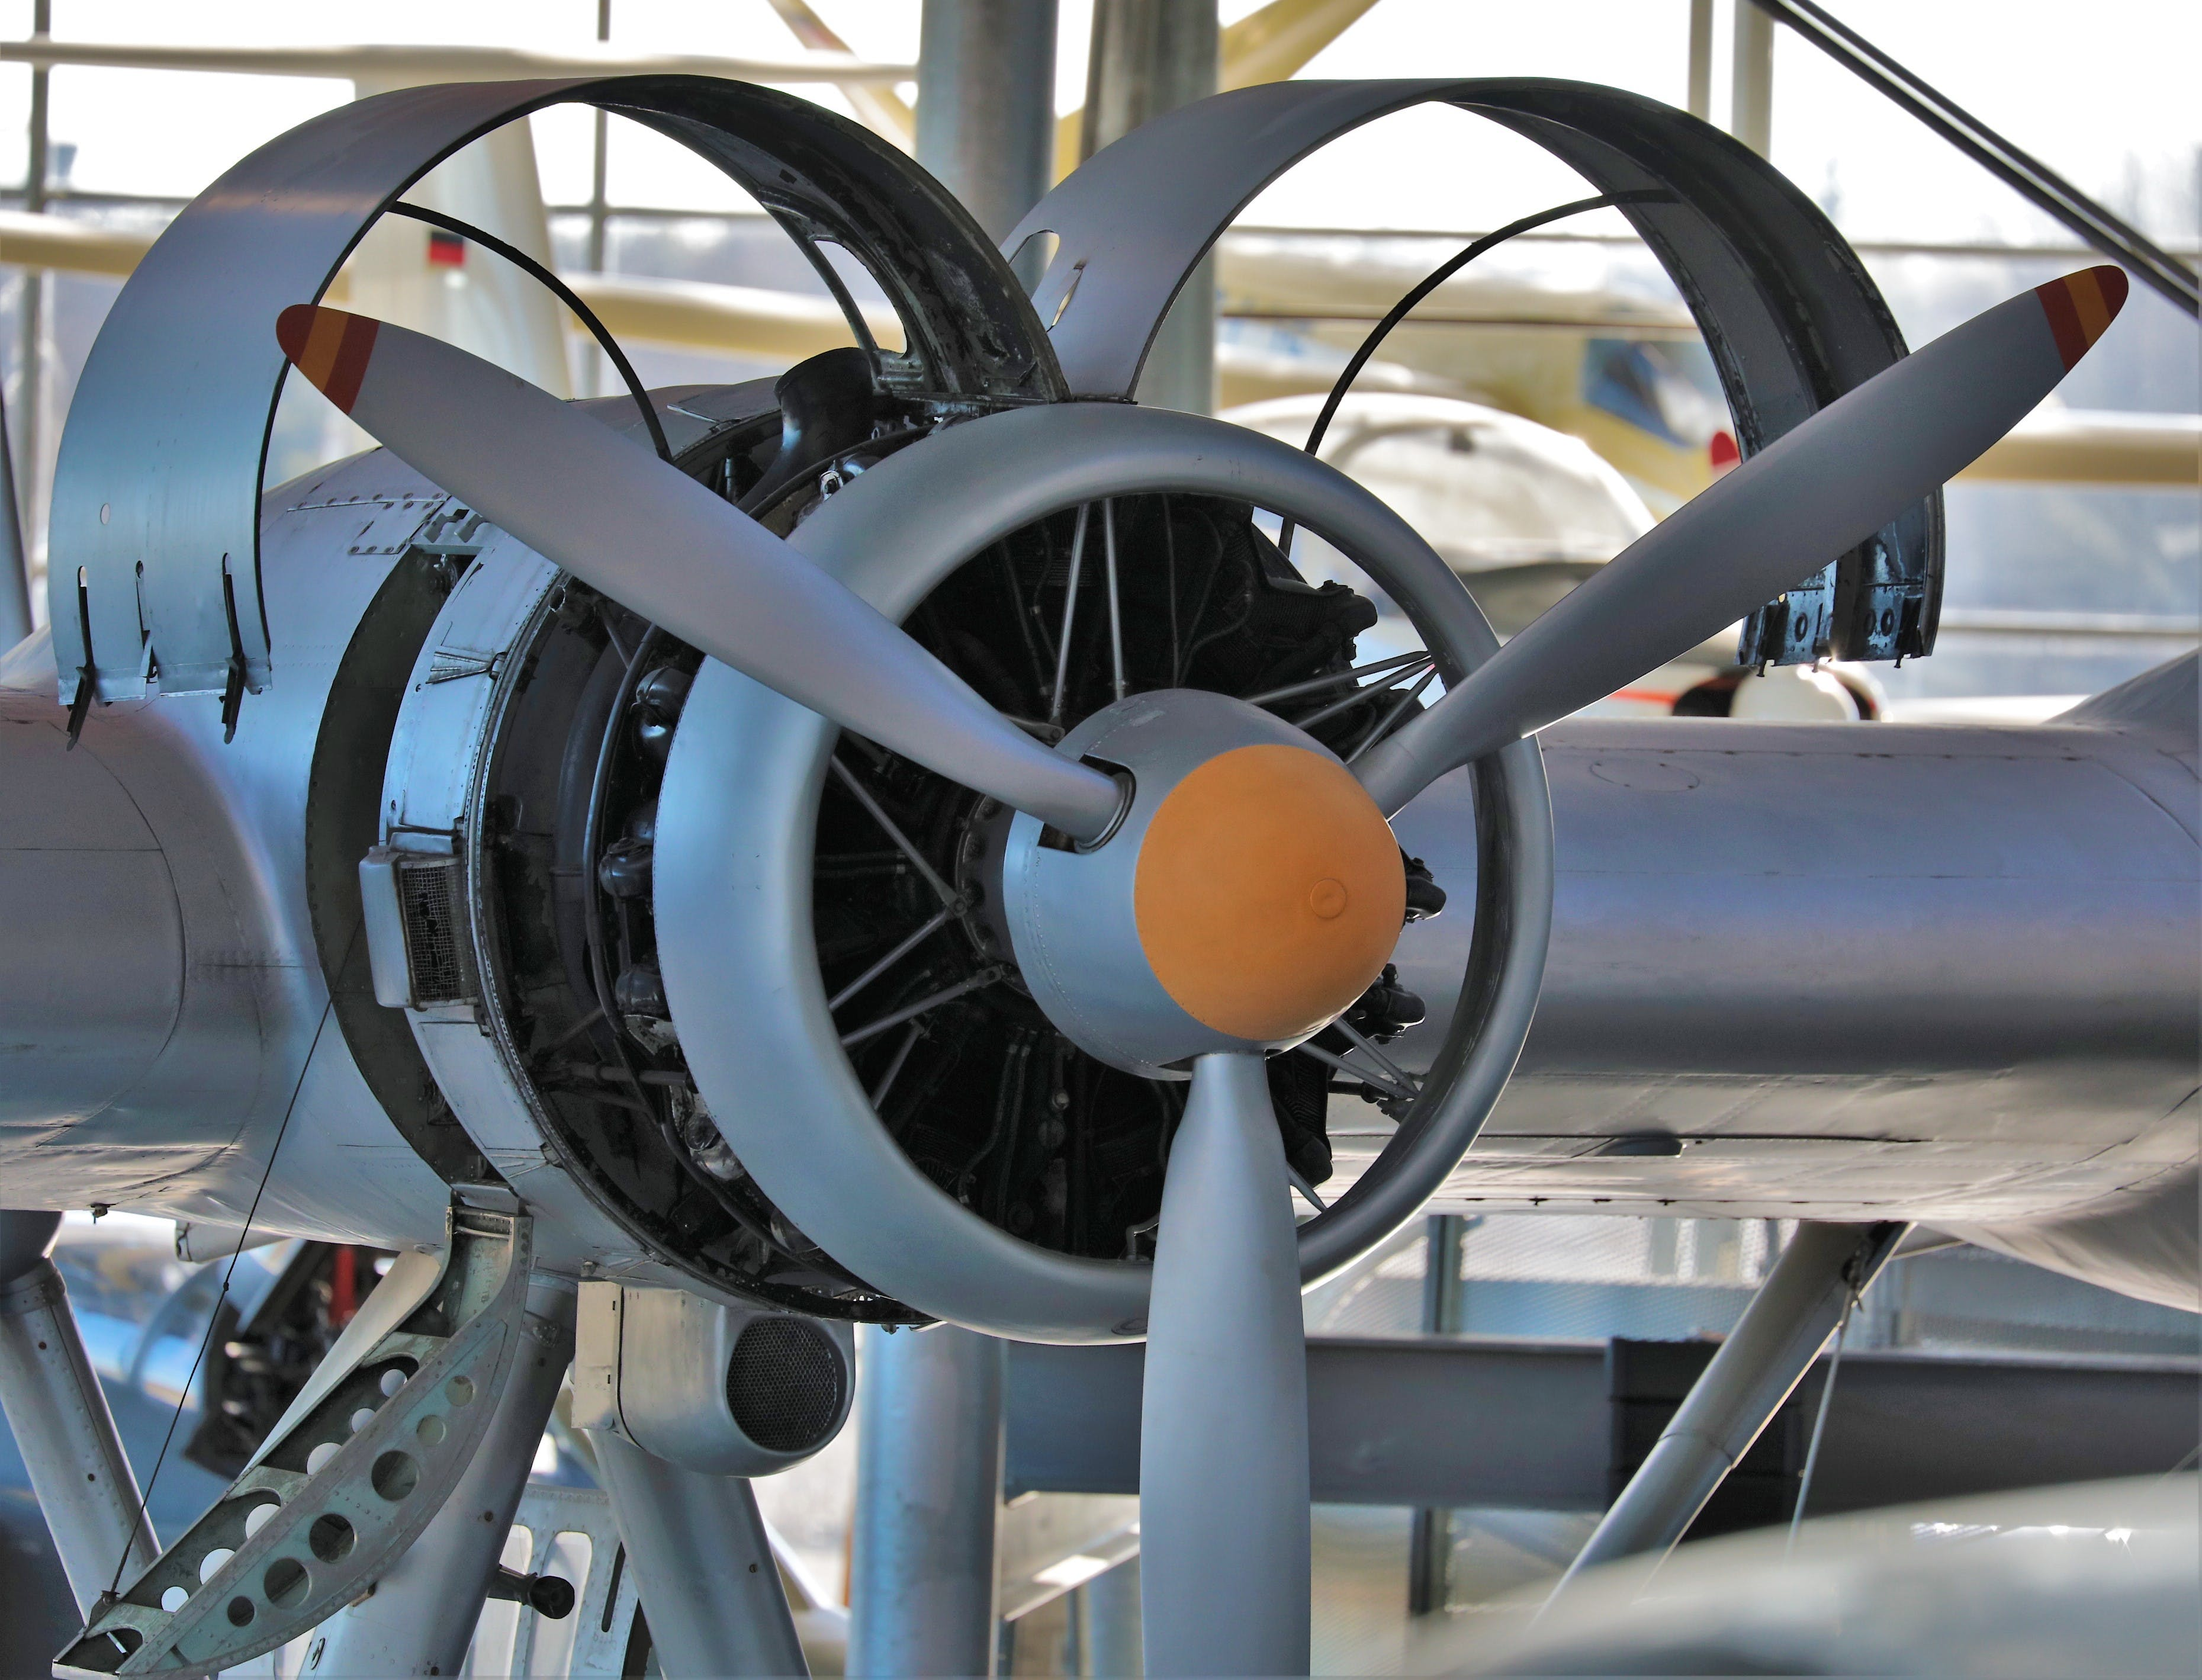 Free stock photo of aircraft propellers, engine, propeller plane